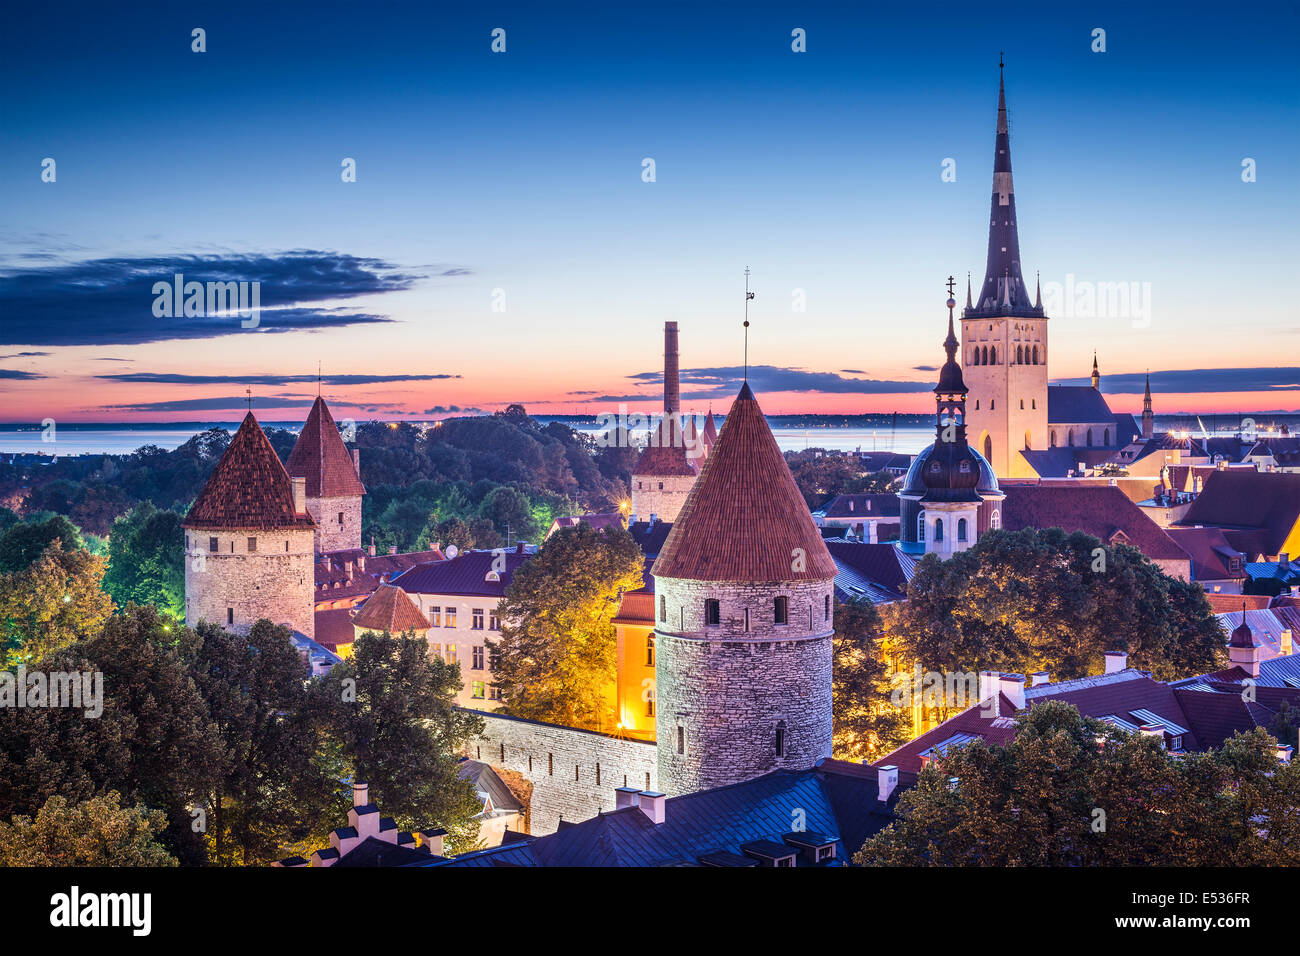 Tallinn, Estonie, à l'aube. Photo Stock